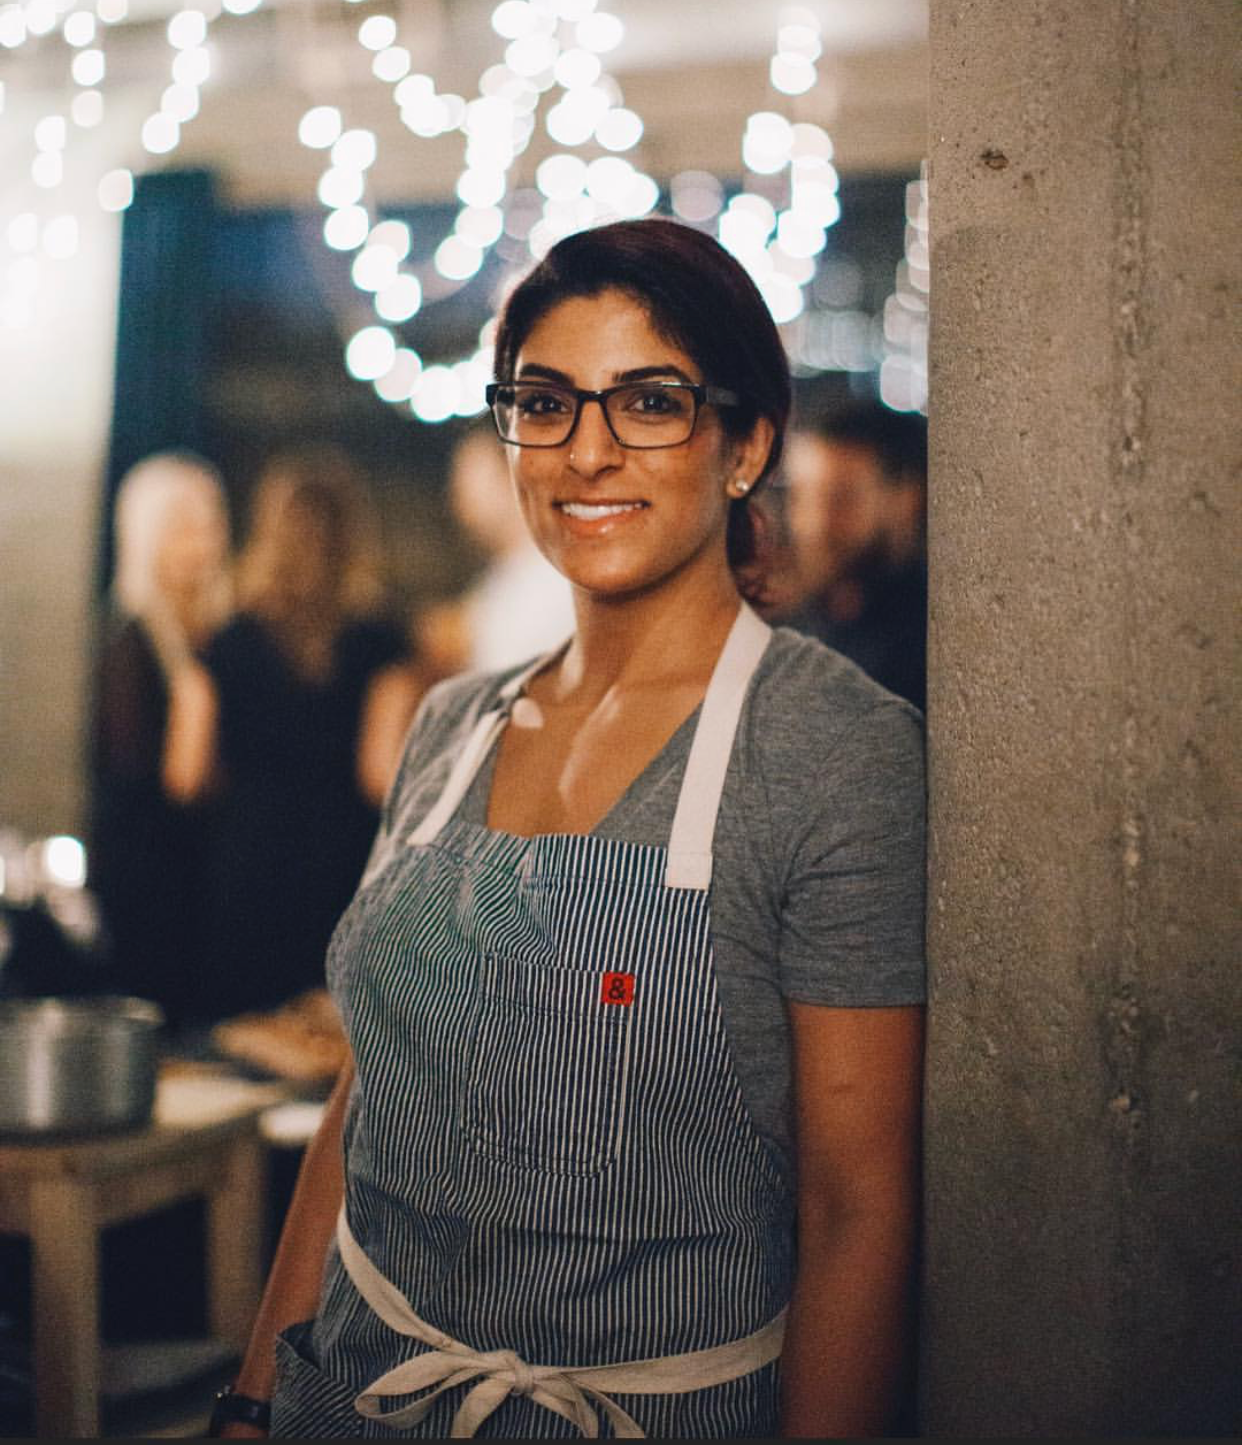 "Beeta Mohajeri - Executive Sous Chef    @chef.mbeetz   Chef Beeta comes to us from Canada! Majoring in Biology at UW in Seattle, she quickly switched paths and followed her hunger. She learned Farm to table on Whidbey Island, working with farmers and other Chef's for the freshest quality ingredients. She's since trained at Commanders Palace in New Orleans, and made her way to Orange County to pursue her brand ""BeetzEats"". She's a celebrity Private Chef (Simon Cowell, Tyra Banks & Leonardo DiCaprio to name a few…) She's your girl when it comes to intimate dinner parties & smaller catering gigs."